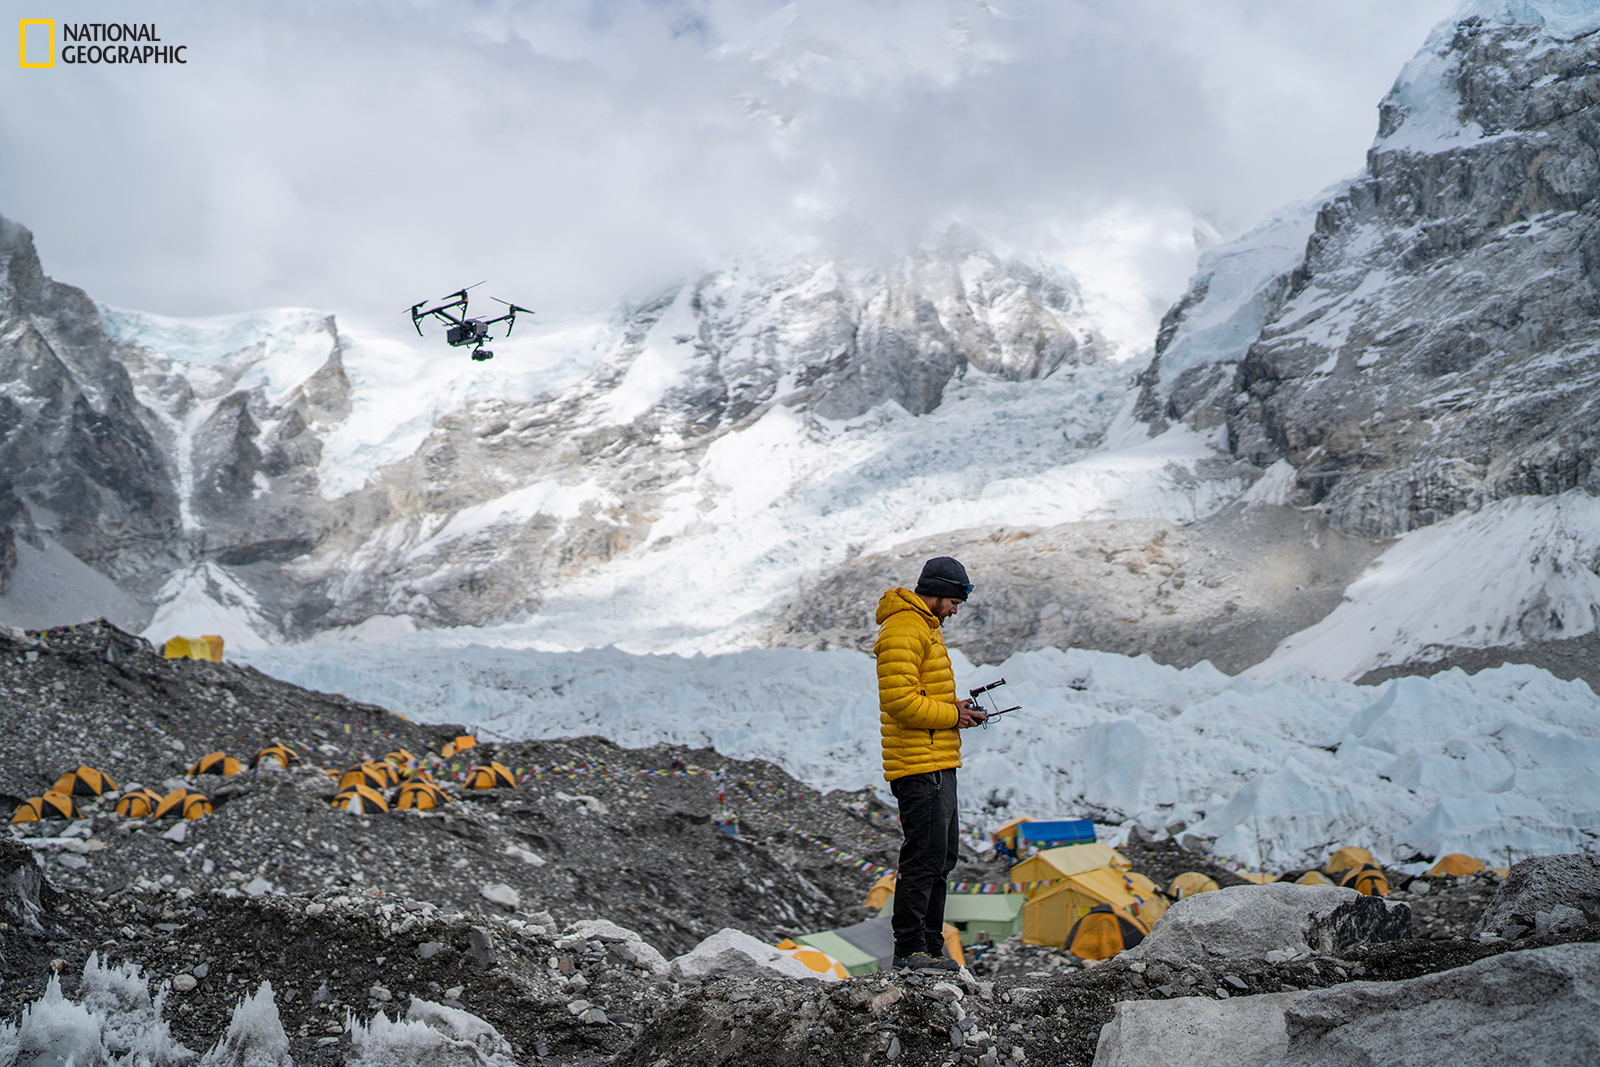 Expedition installs highest weather stations on Earth atop